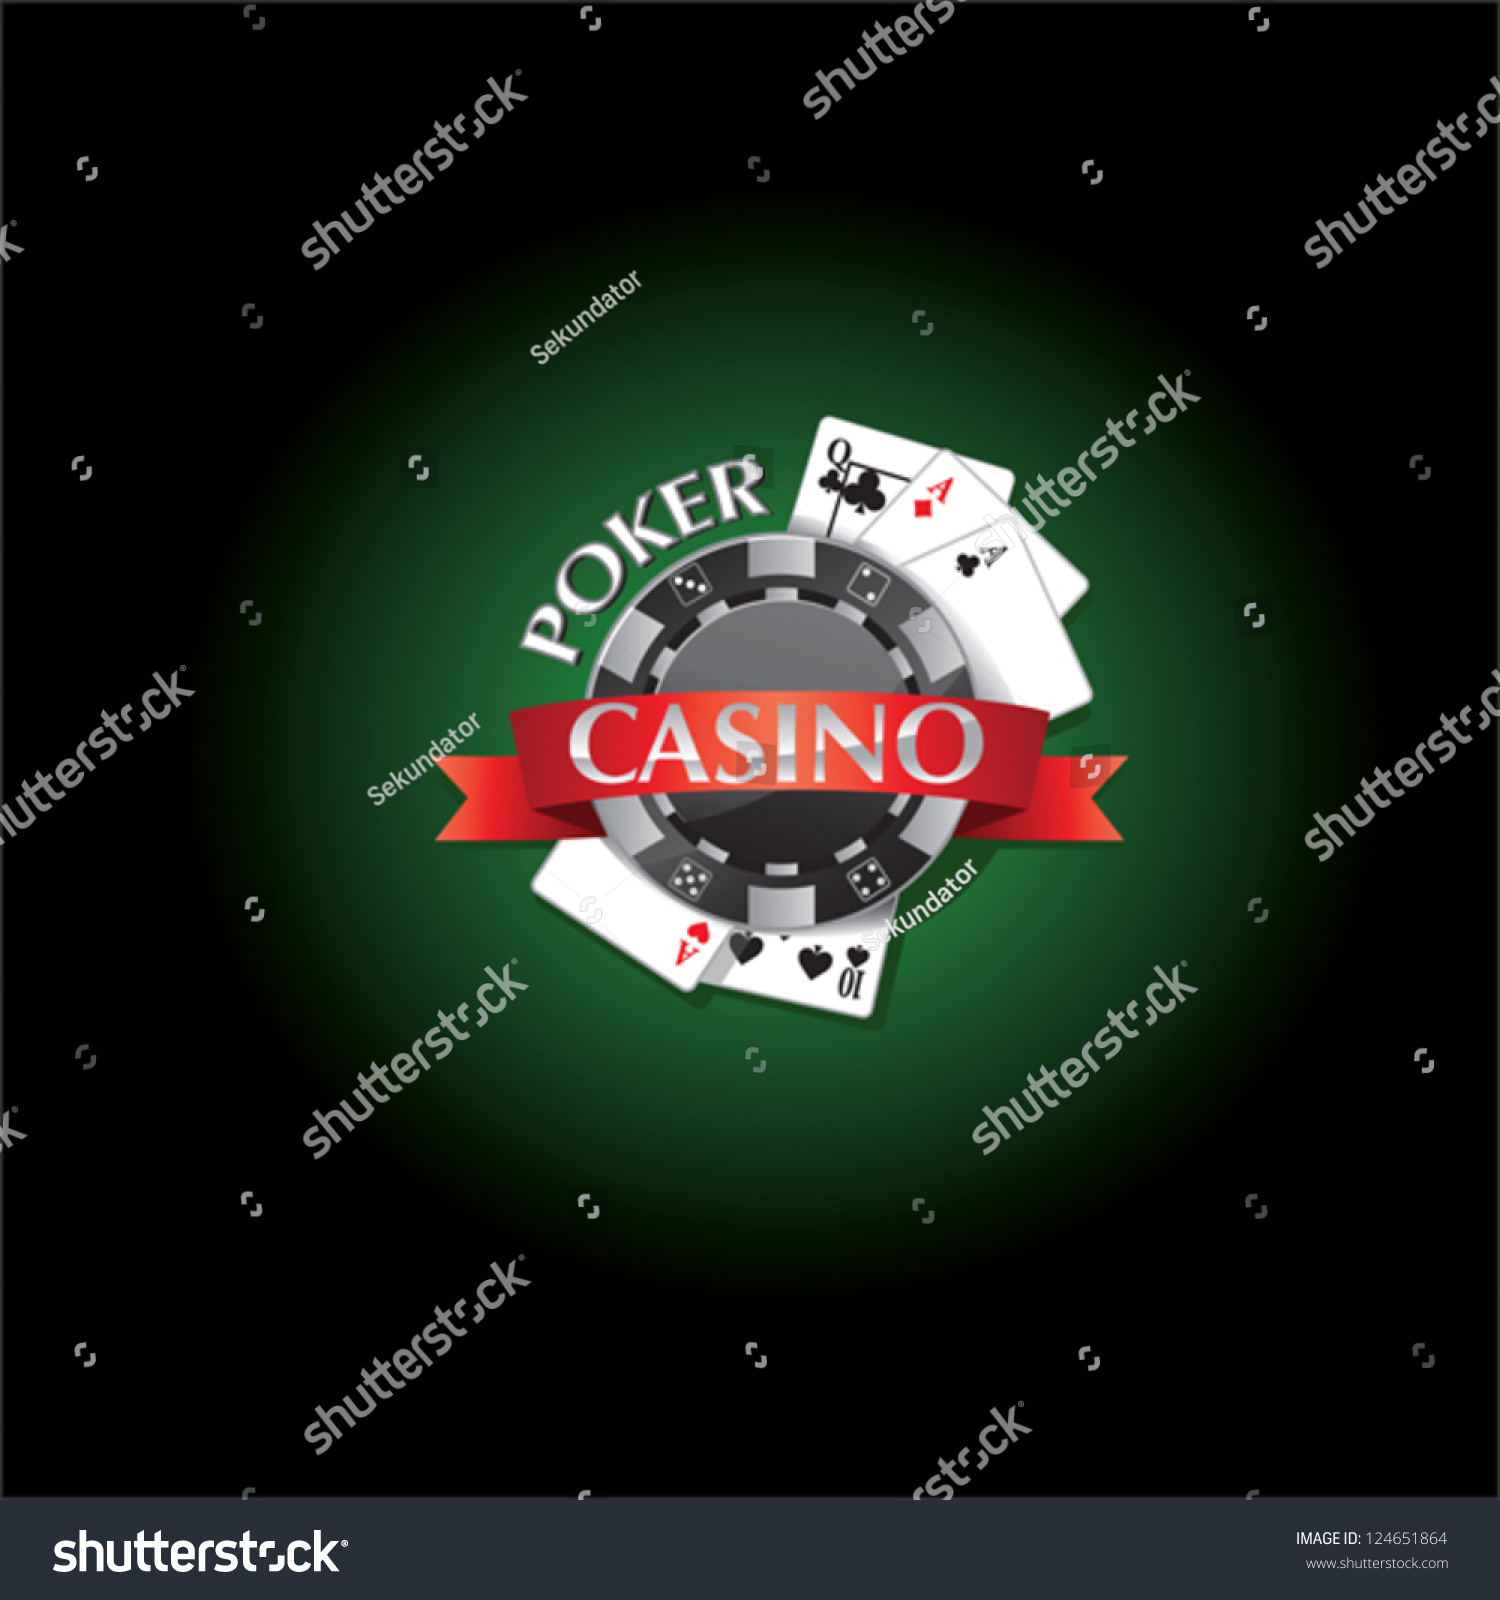 munich casino poker